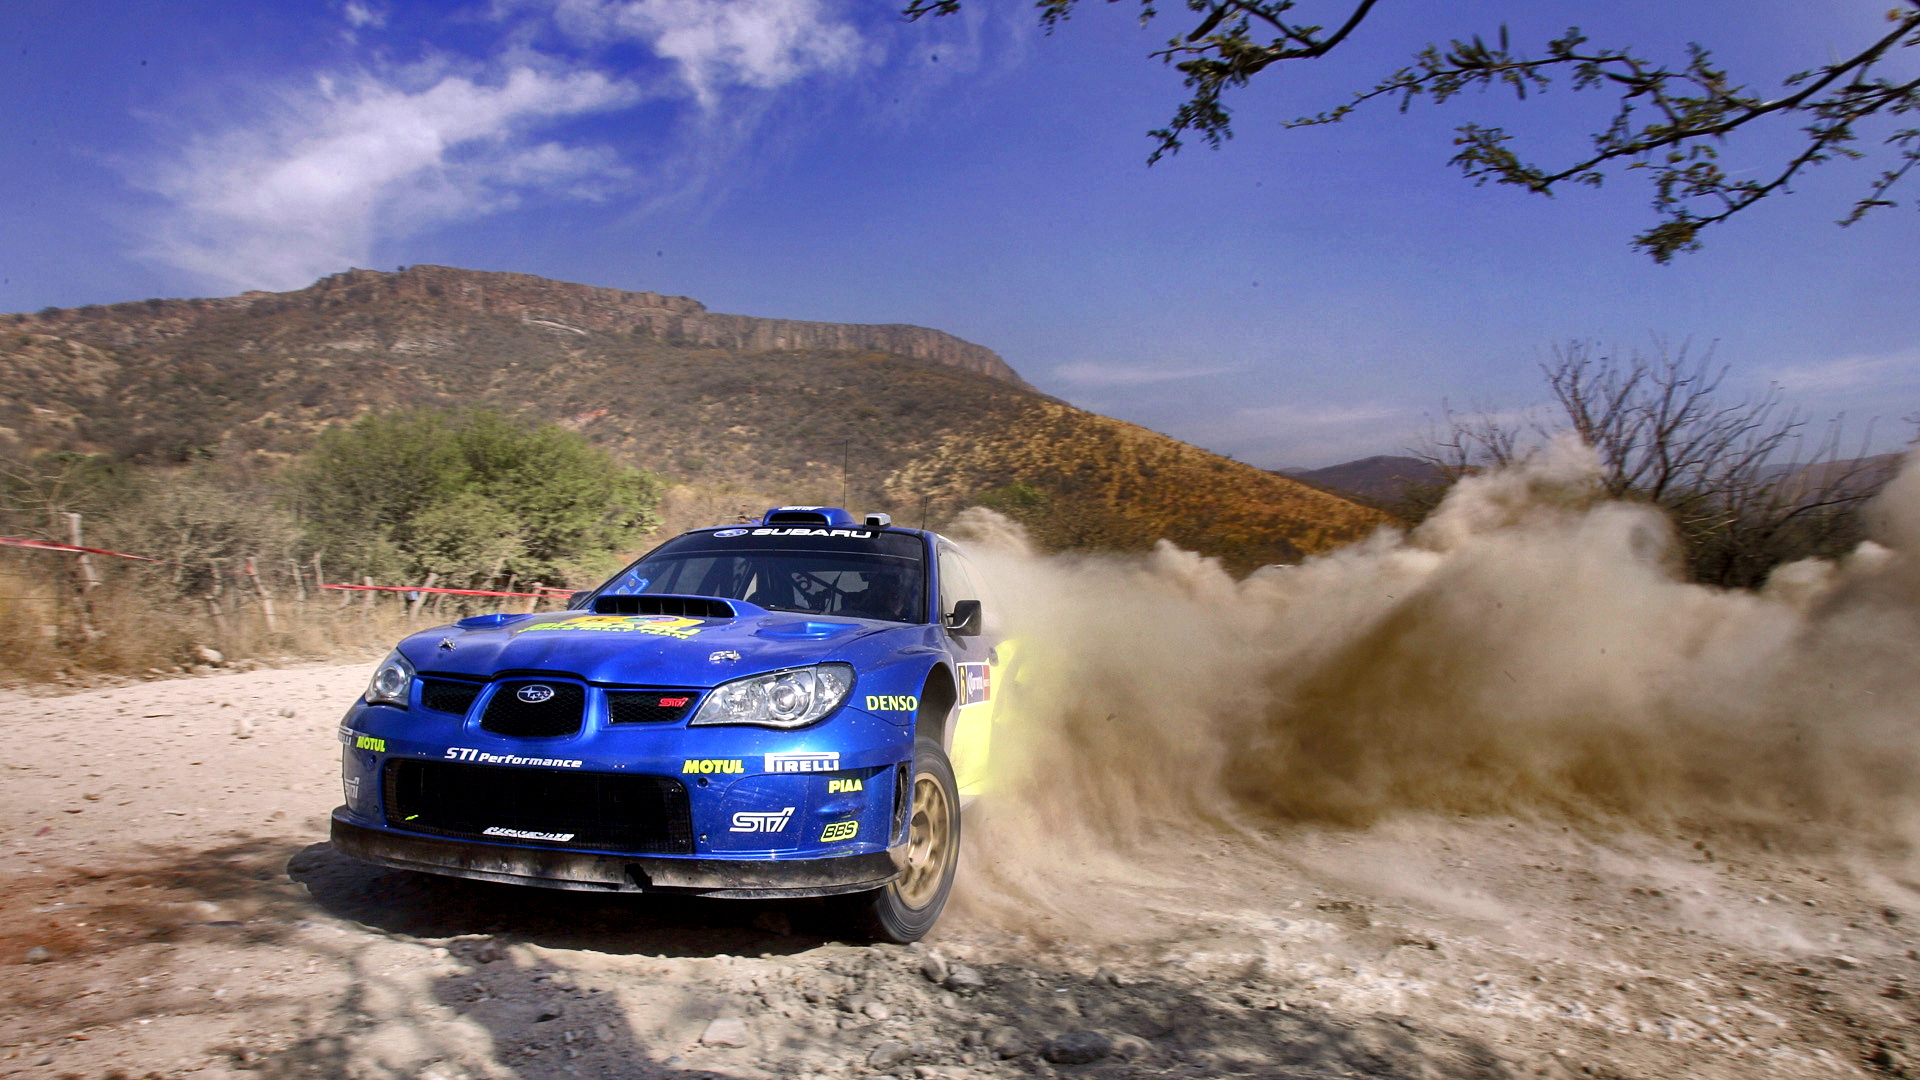 Cool Rally Wallpaper